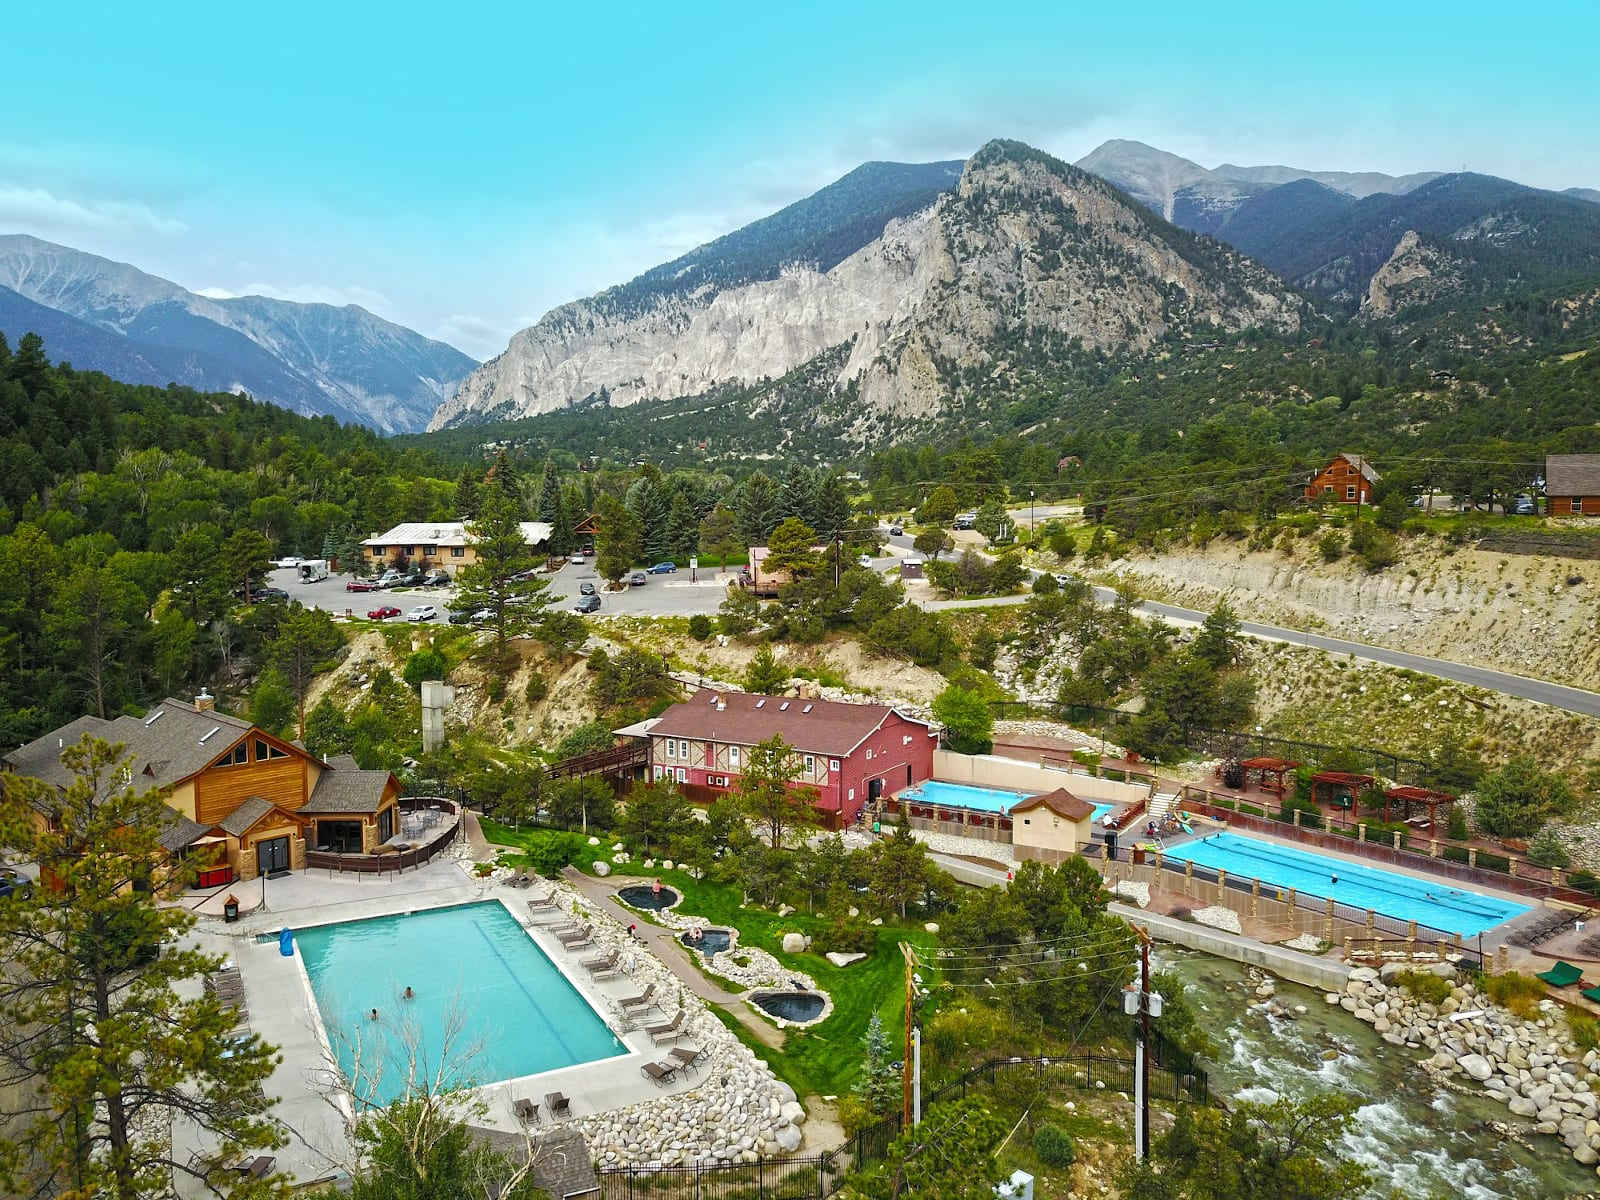 Mount Princeton Hot Springs Resort Aerial View Nathrop CO